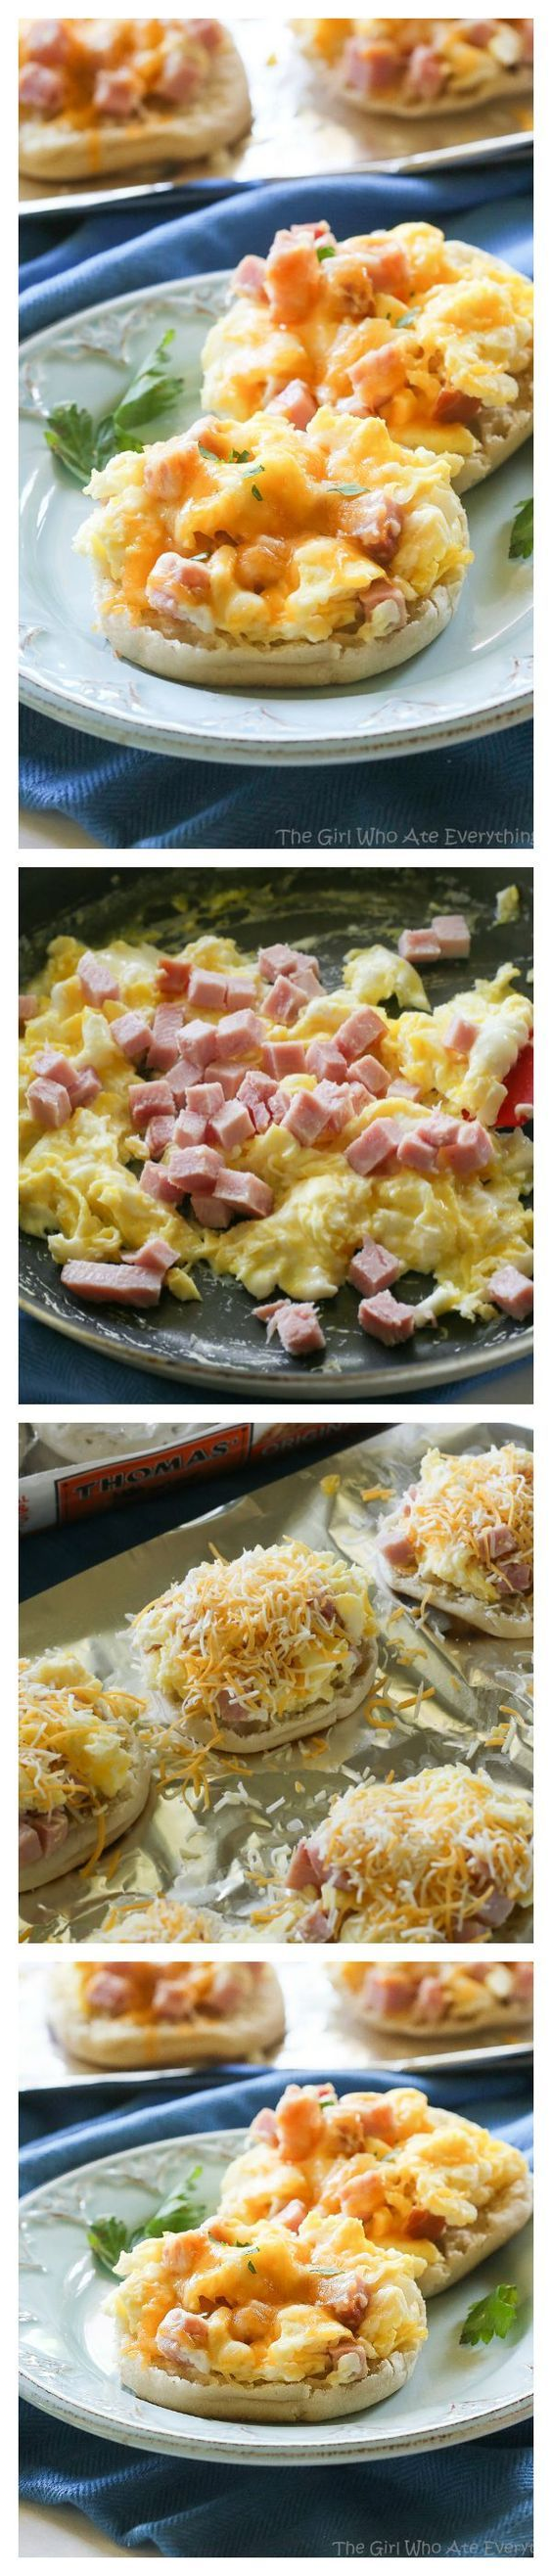 Breakfast Pizzas - toasty English muffins topped with scrambled eggs, ham, and melted cheese